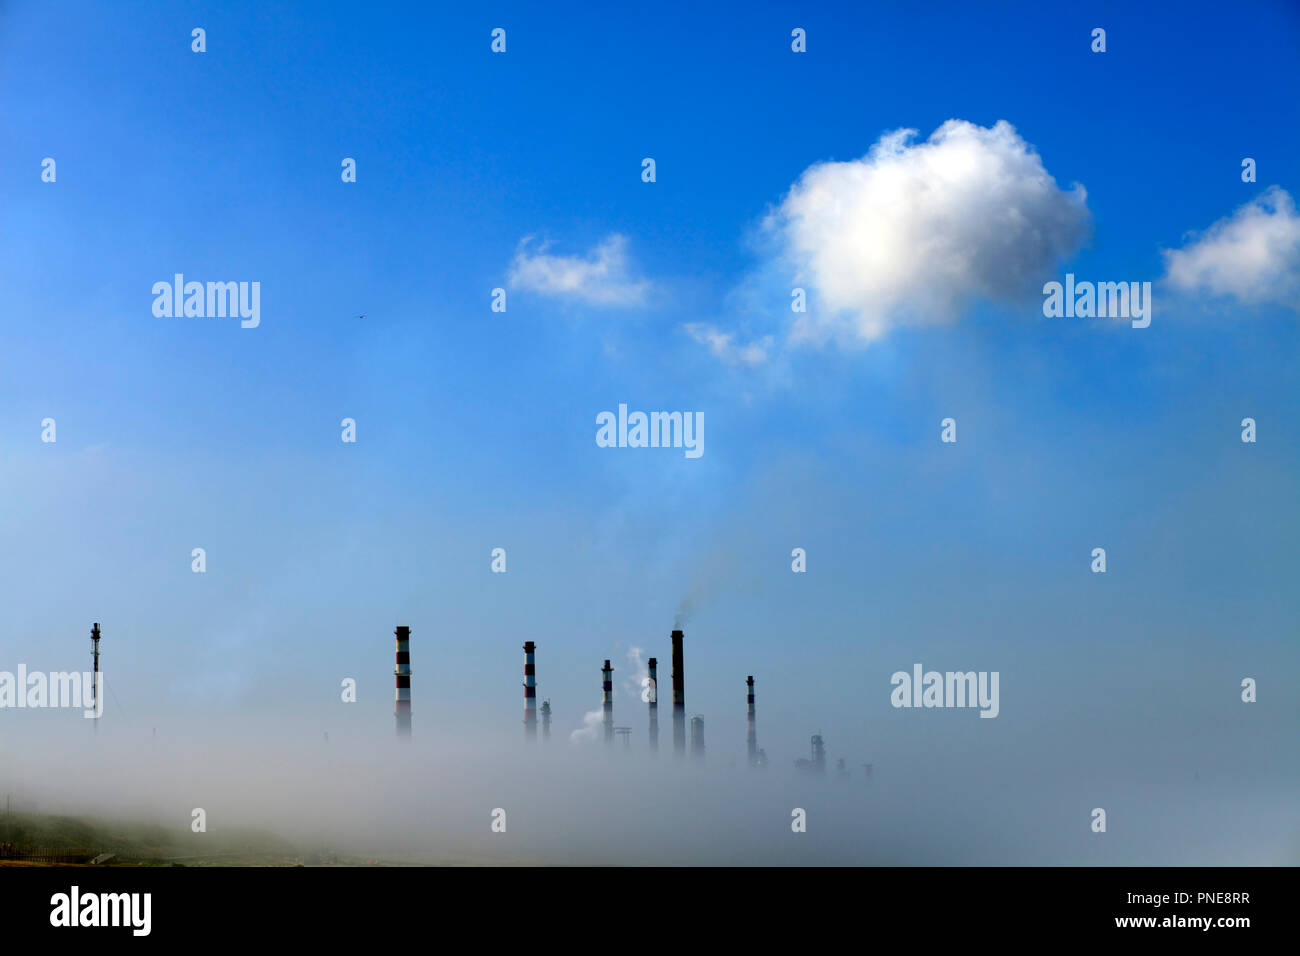 Chimneys of an oil refinery semi losted in smog - Stock Image